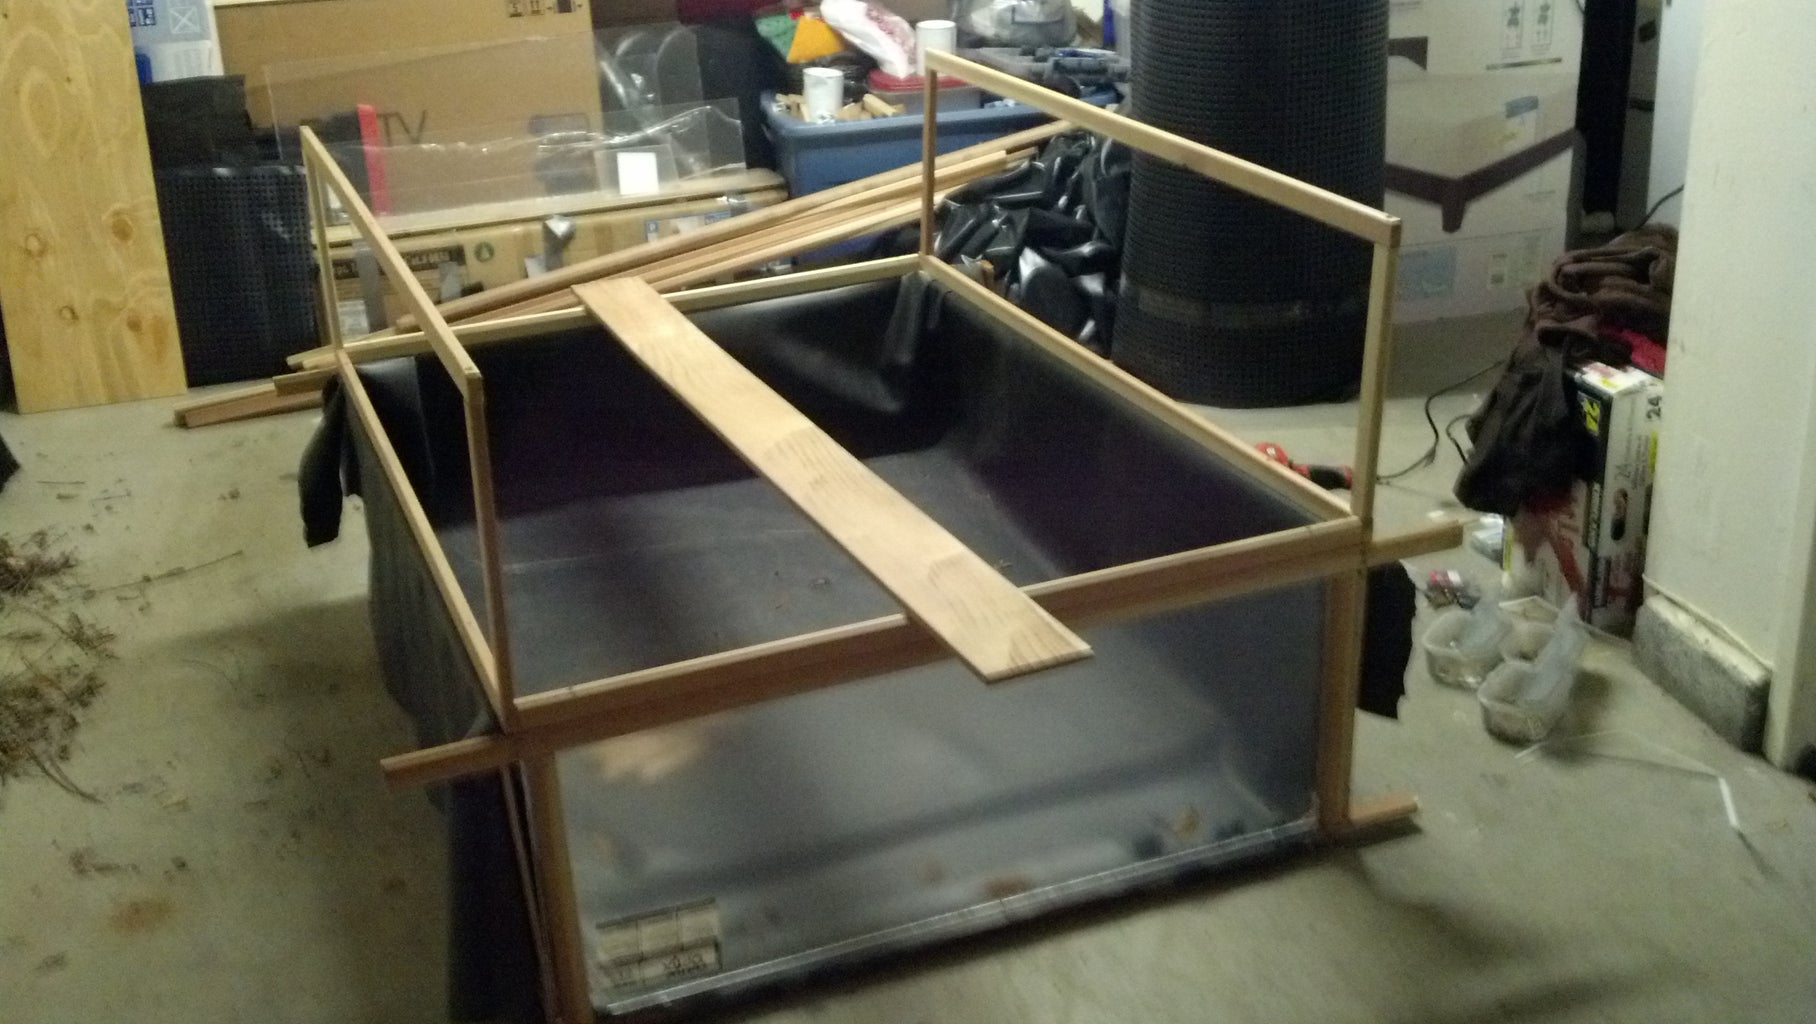 Construct the Greenhouse Frame